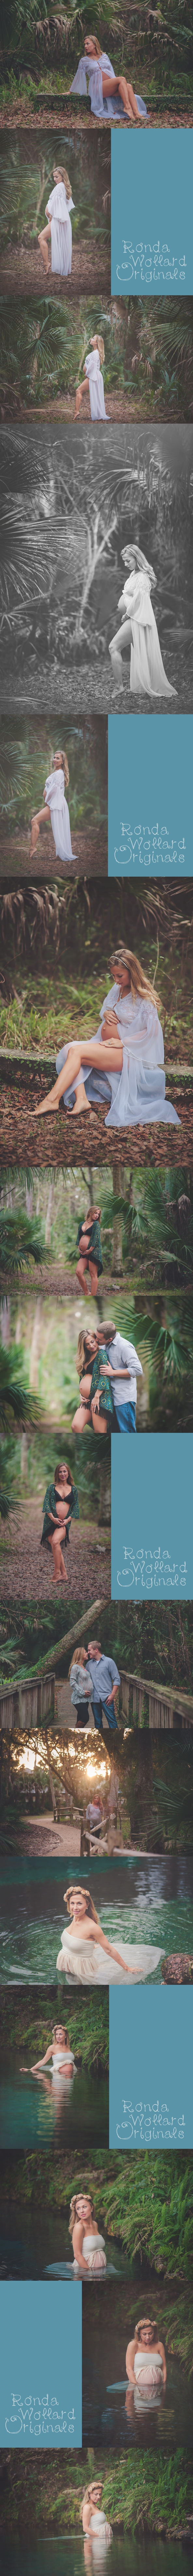 Ronda Wollards Originals- Deland Photographer- Child Maternity Family Photographer_0001